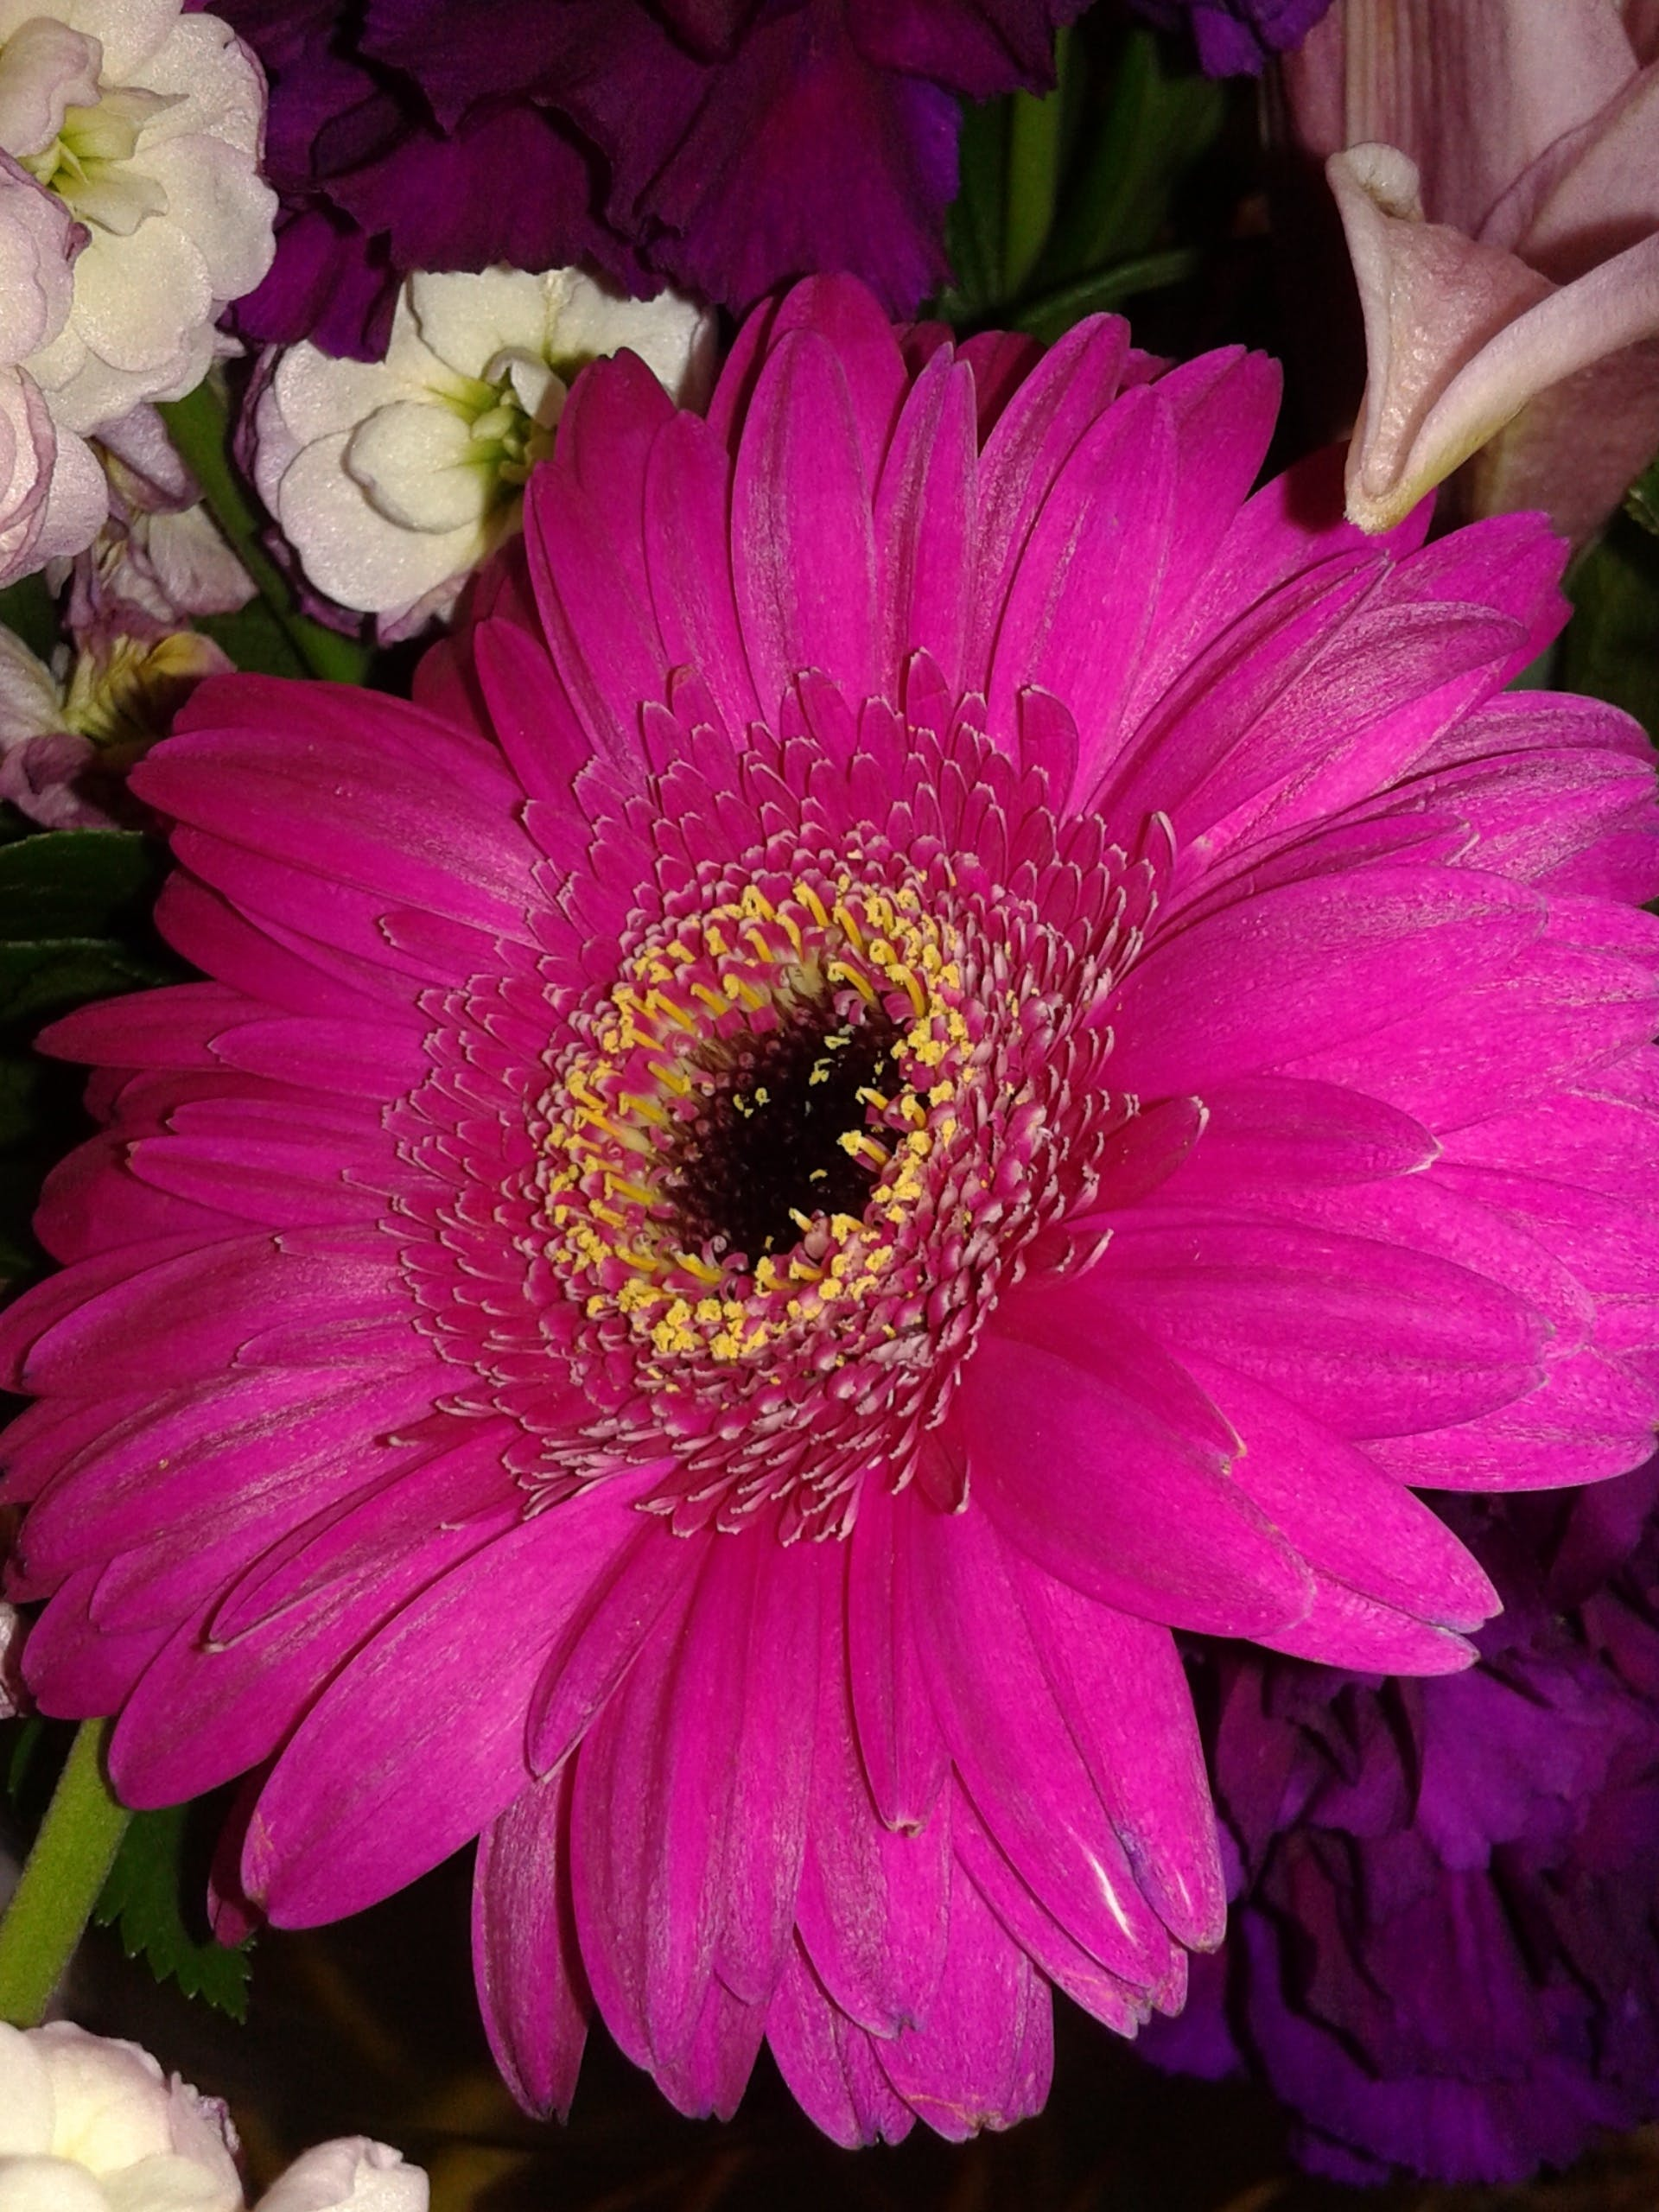 Free stock photo of daisy, flower, flower bouquet, gerbera